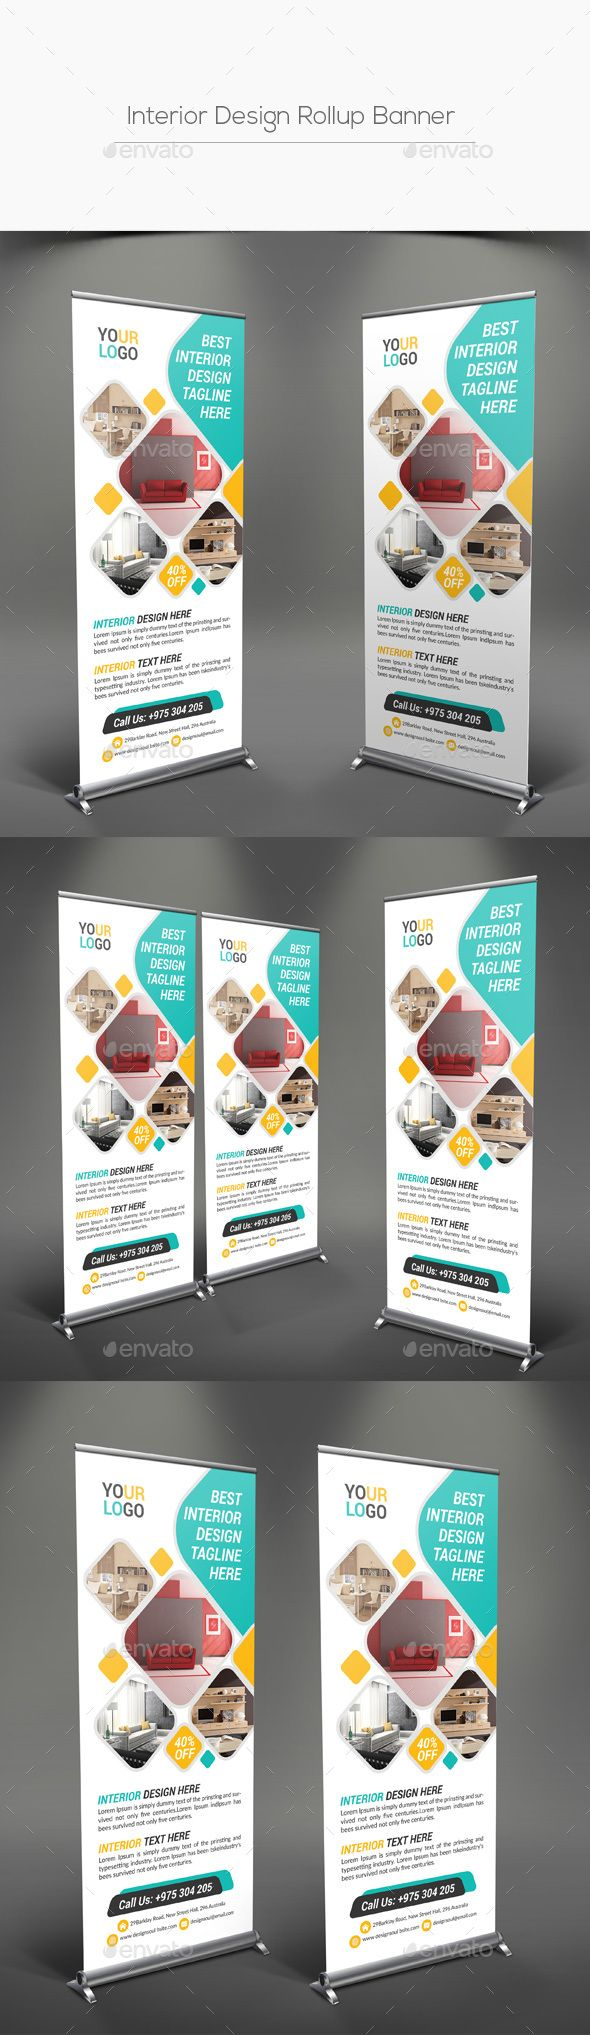 Interior Design Rollup Banner With Images Standing Banner